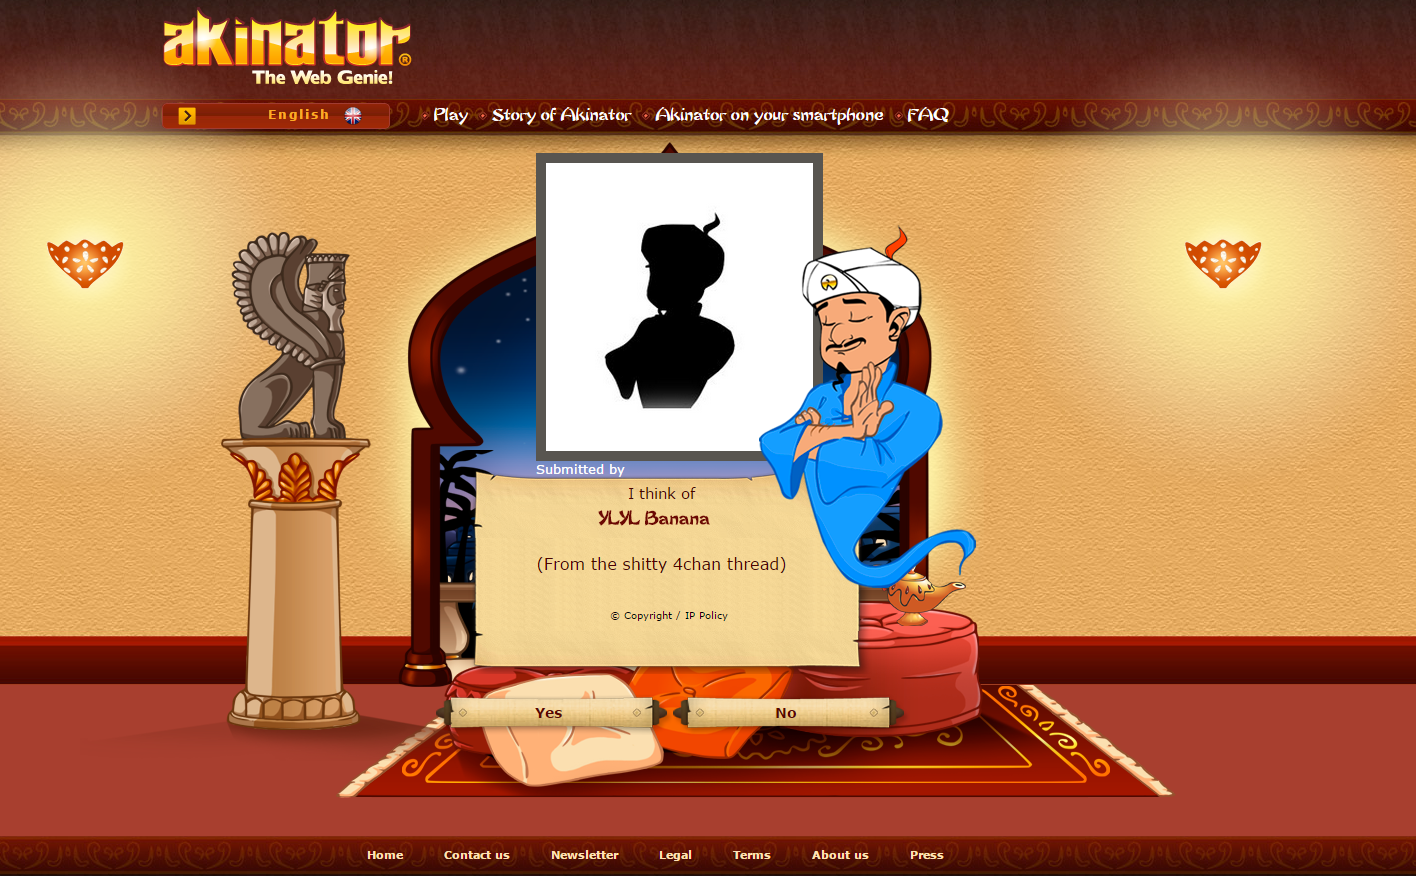 Thought akinator wouldn't know.... . The Web Genie! - E II El I i ' Us] Play Sting: If Fapinator tdlr. , an year Ermh' I think of KM., Banana From the shitty kh